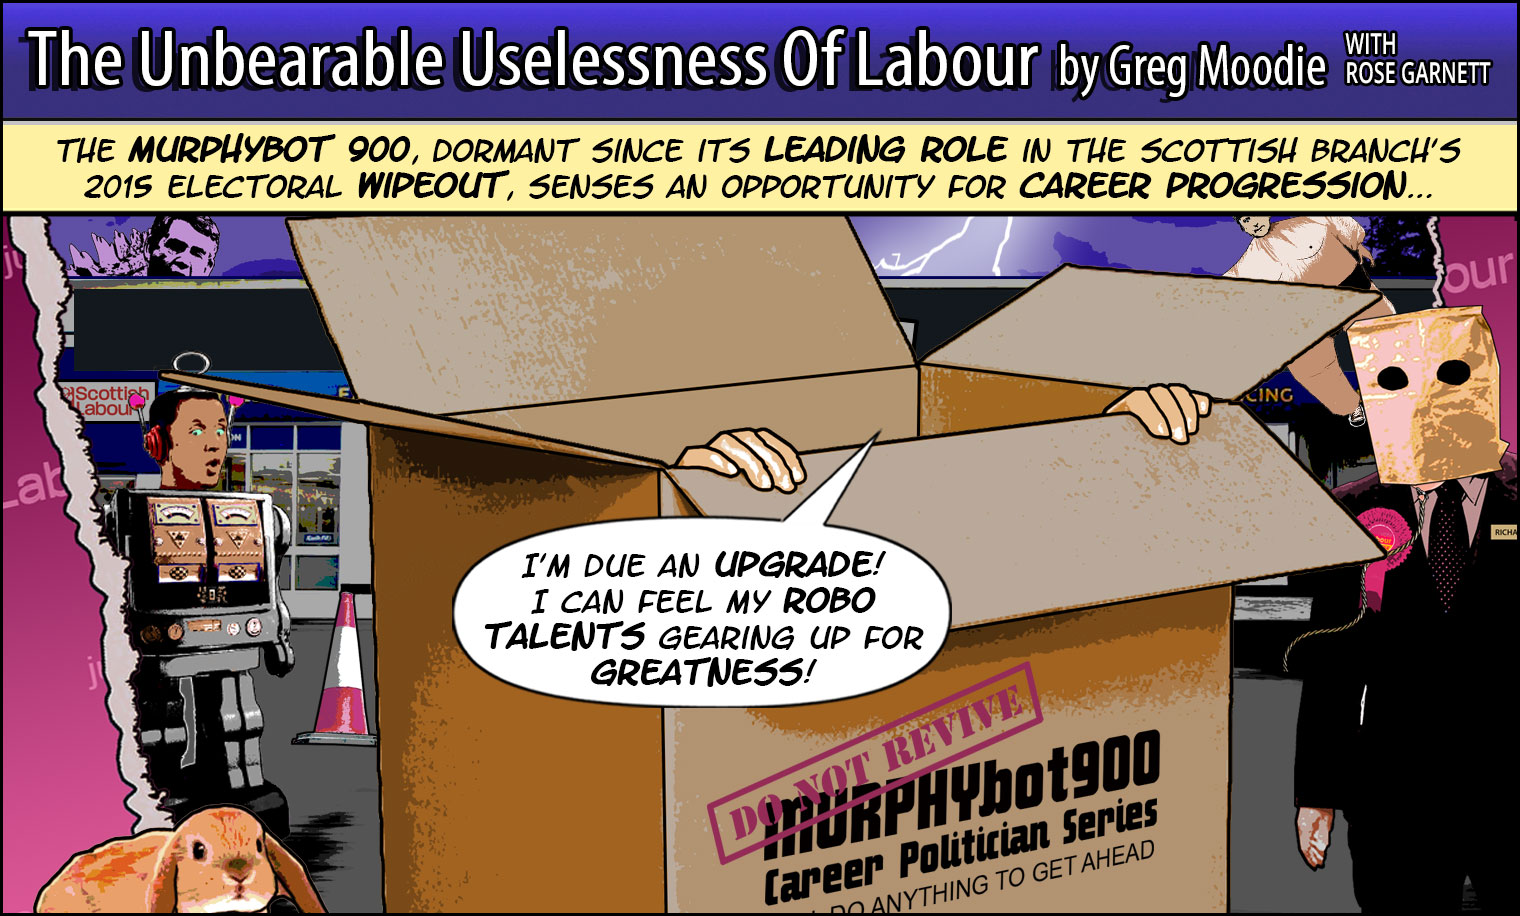 The Unbearable Uselessness Of Labour